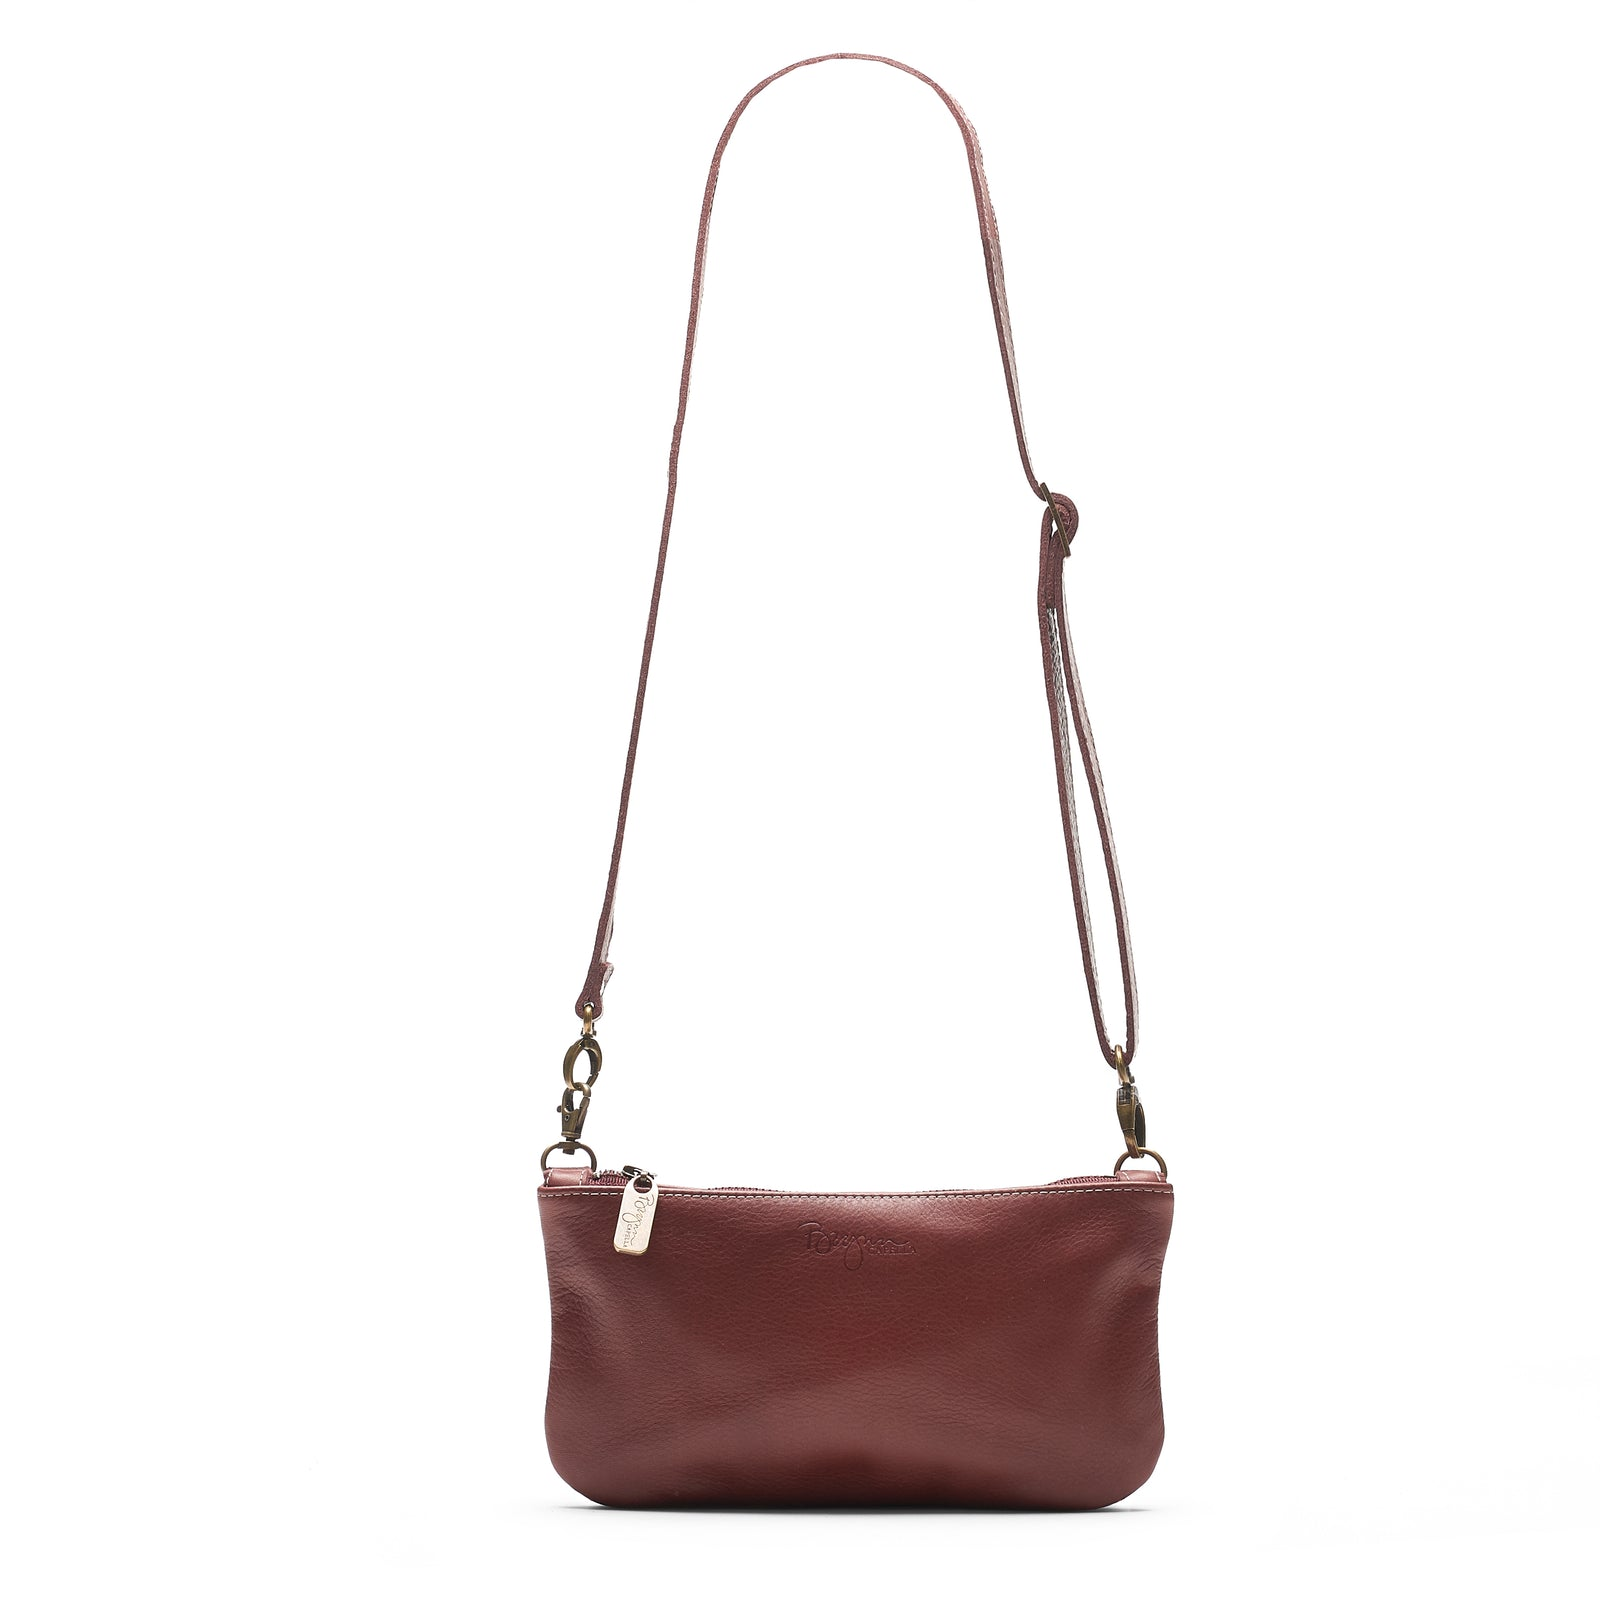 Cher Belt Bag / Crossbody - Merlot - Brynn Capella, Mini Crossbody